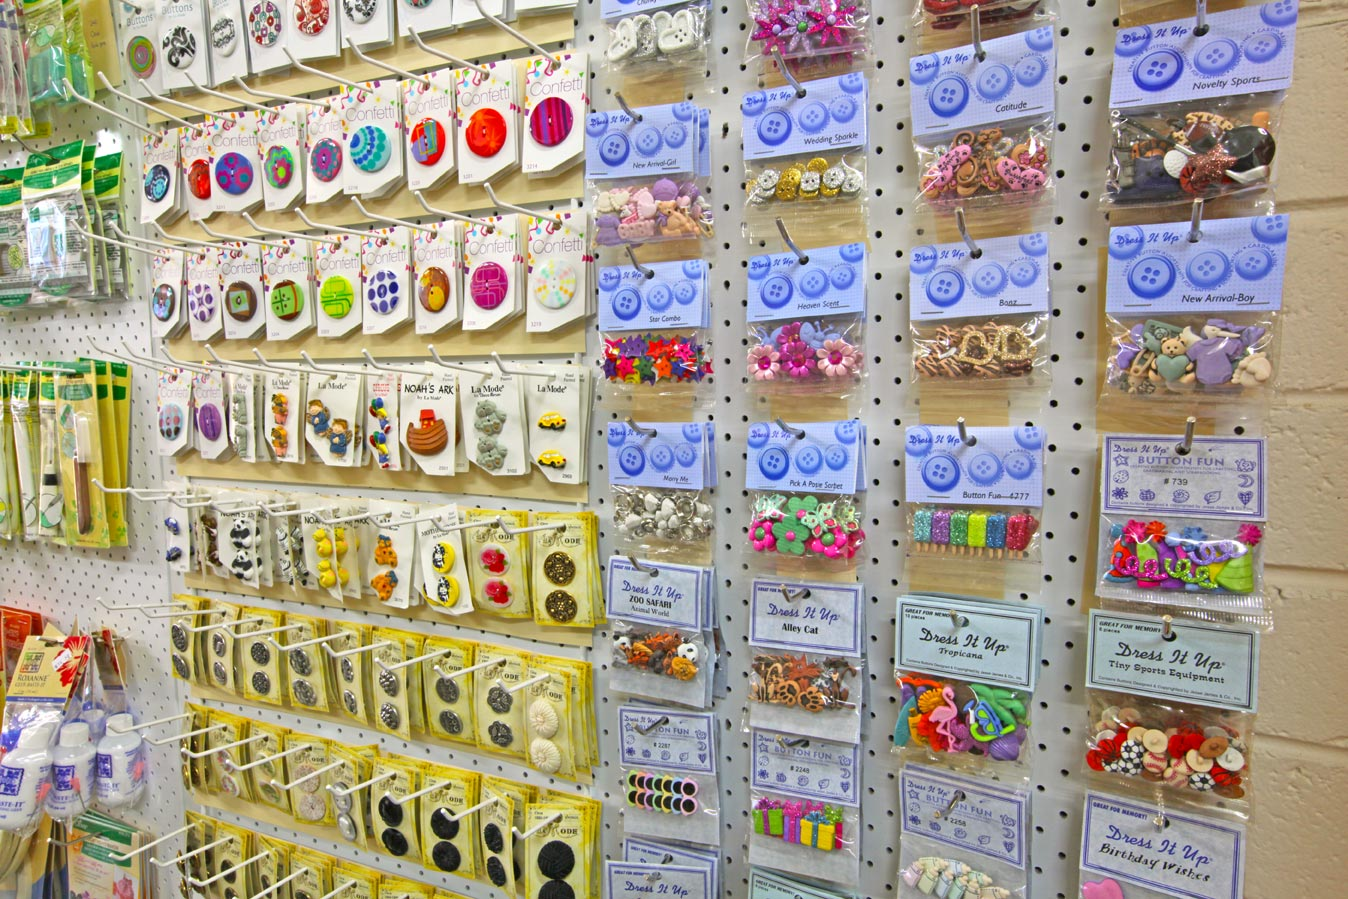 The Quilters' Patch haberdashery buttons